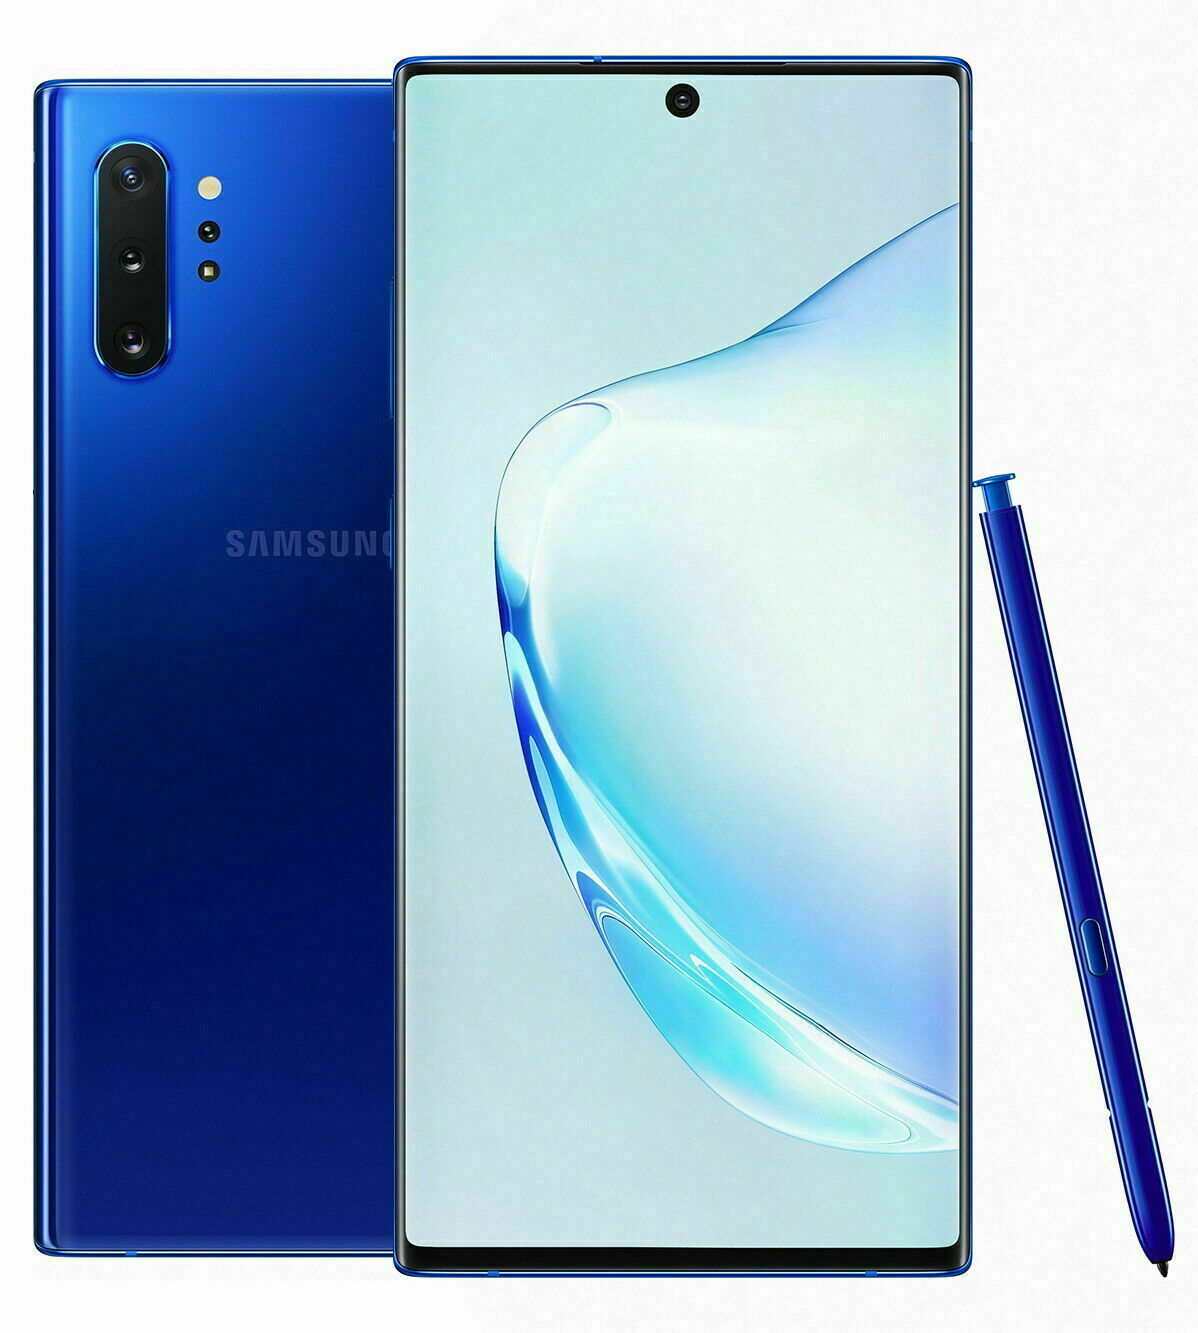 NEW Samsung Galaxy NOTE 10+ Plus 256/512GB ⚫⚪🔵🟣 Star Wars (Factory Unlocked). Buy it now for 739.99